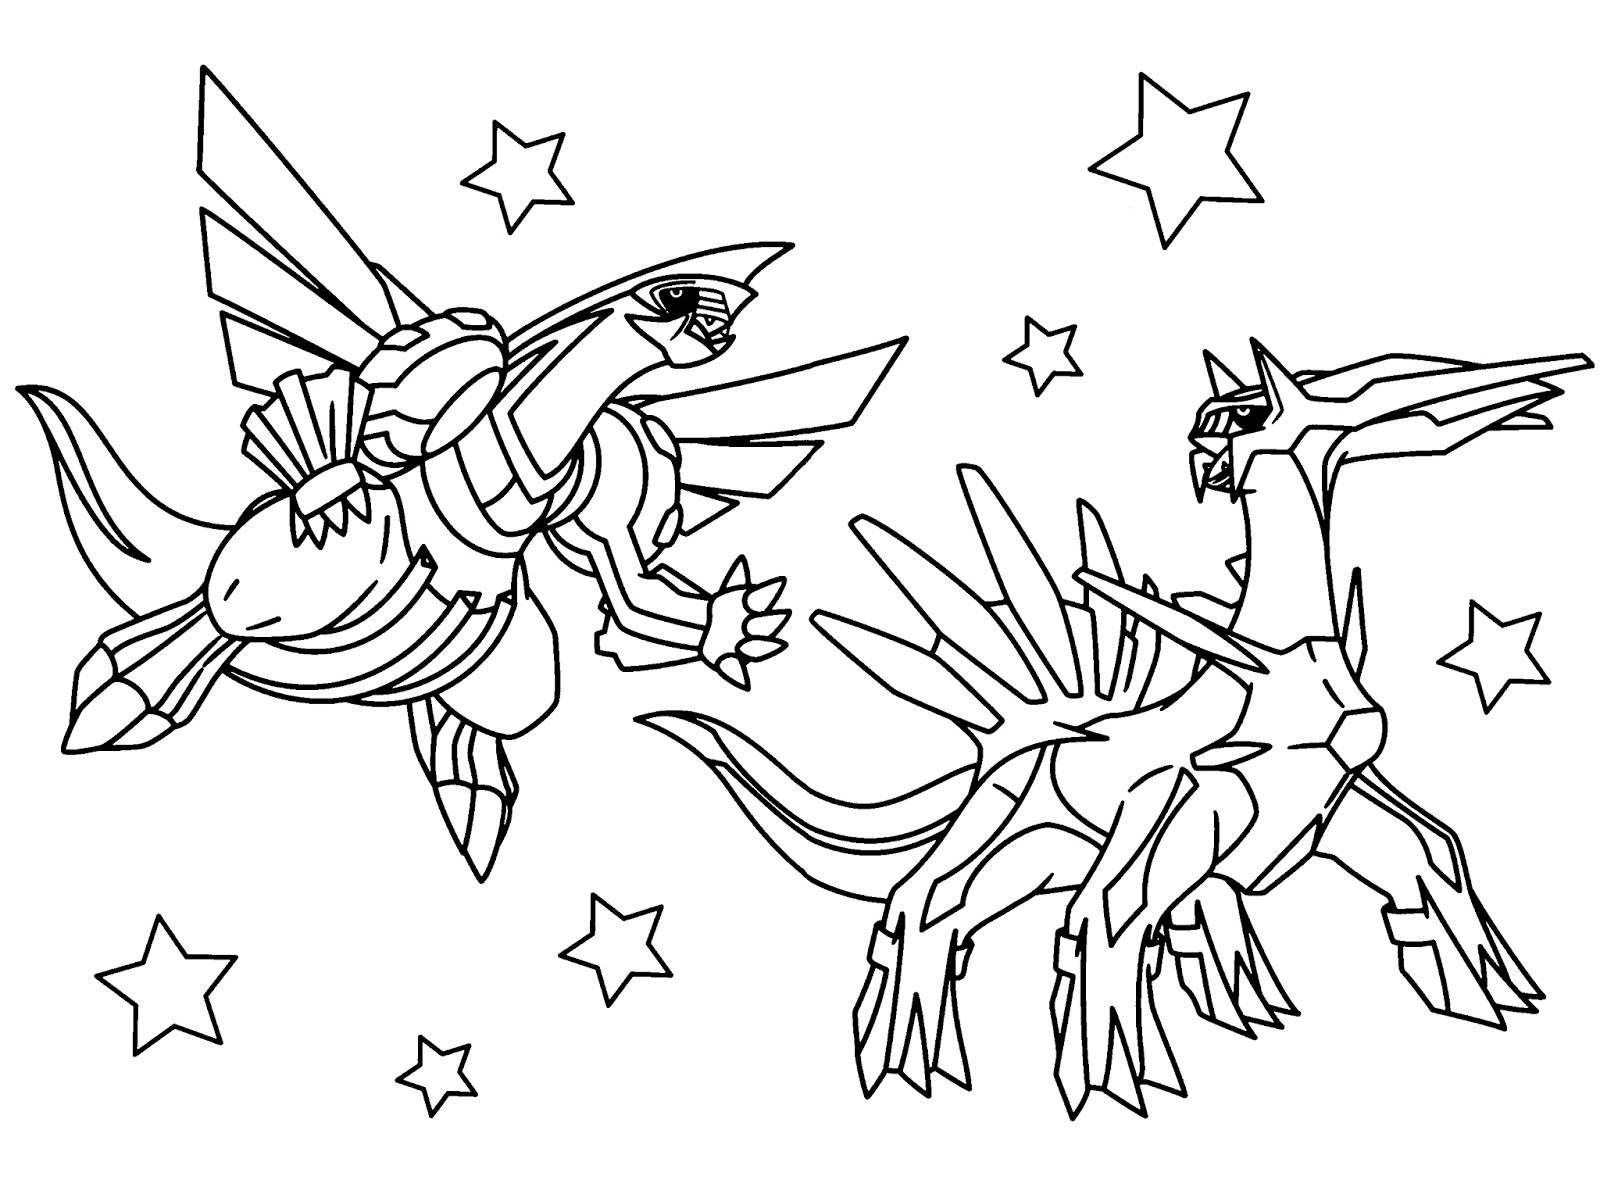 Pokemon Yveltal Coloring Pages At Getcolorings